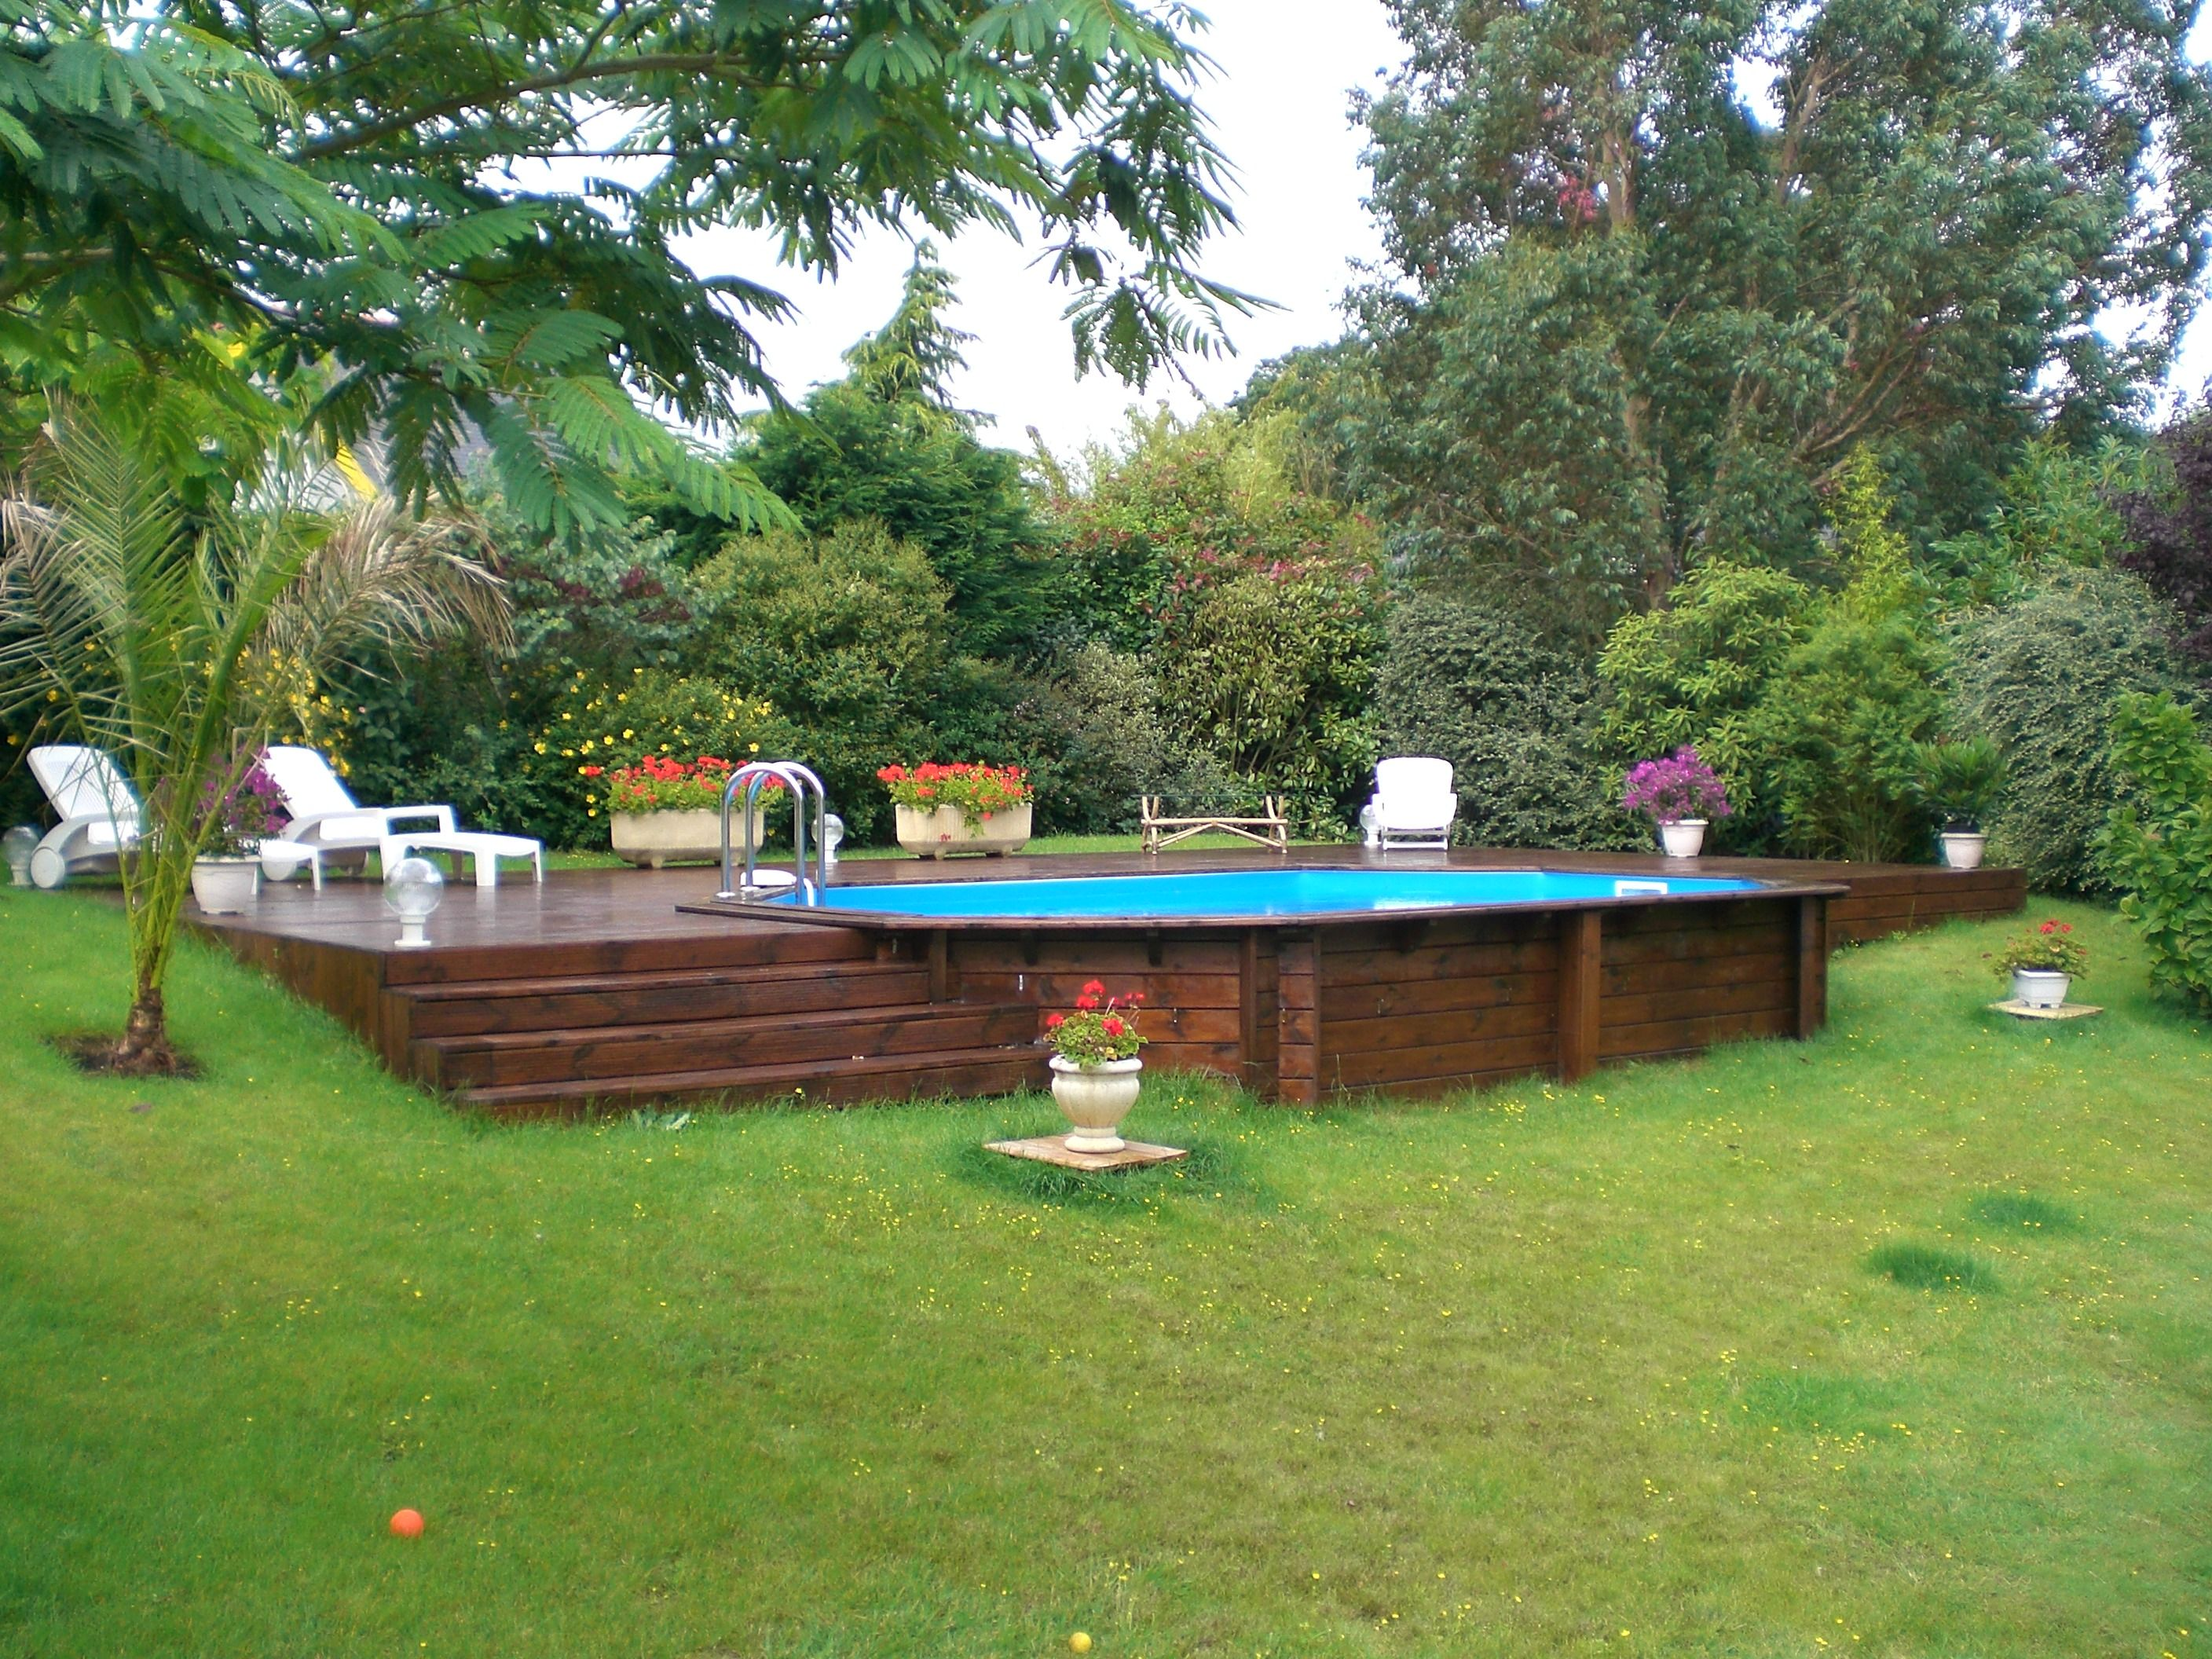 Piscine hors sol en bois semi enterr e sur terrain en for Amenagement sol jardin